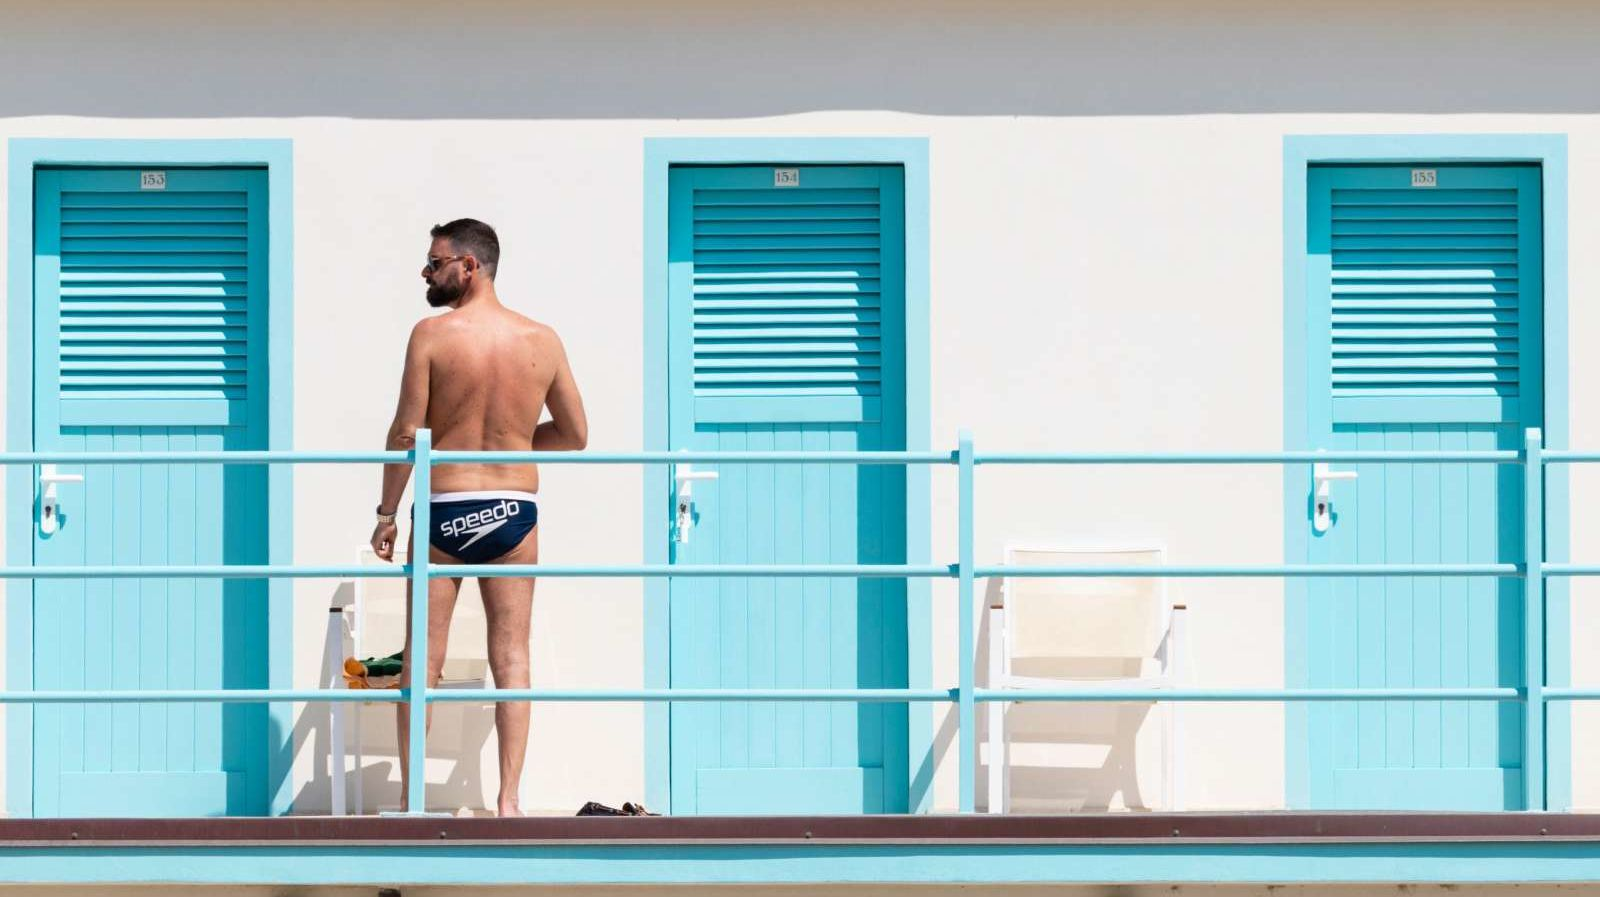 'Budgie Smugglers': A Scandalous History of Speedos